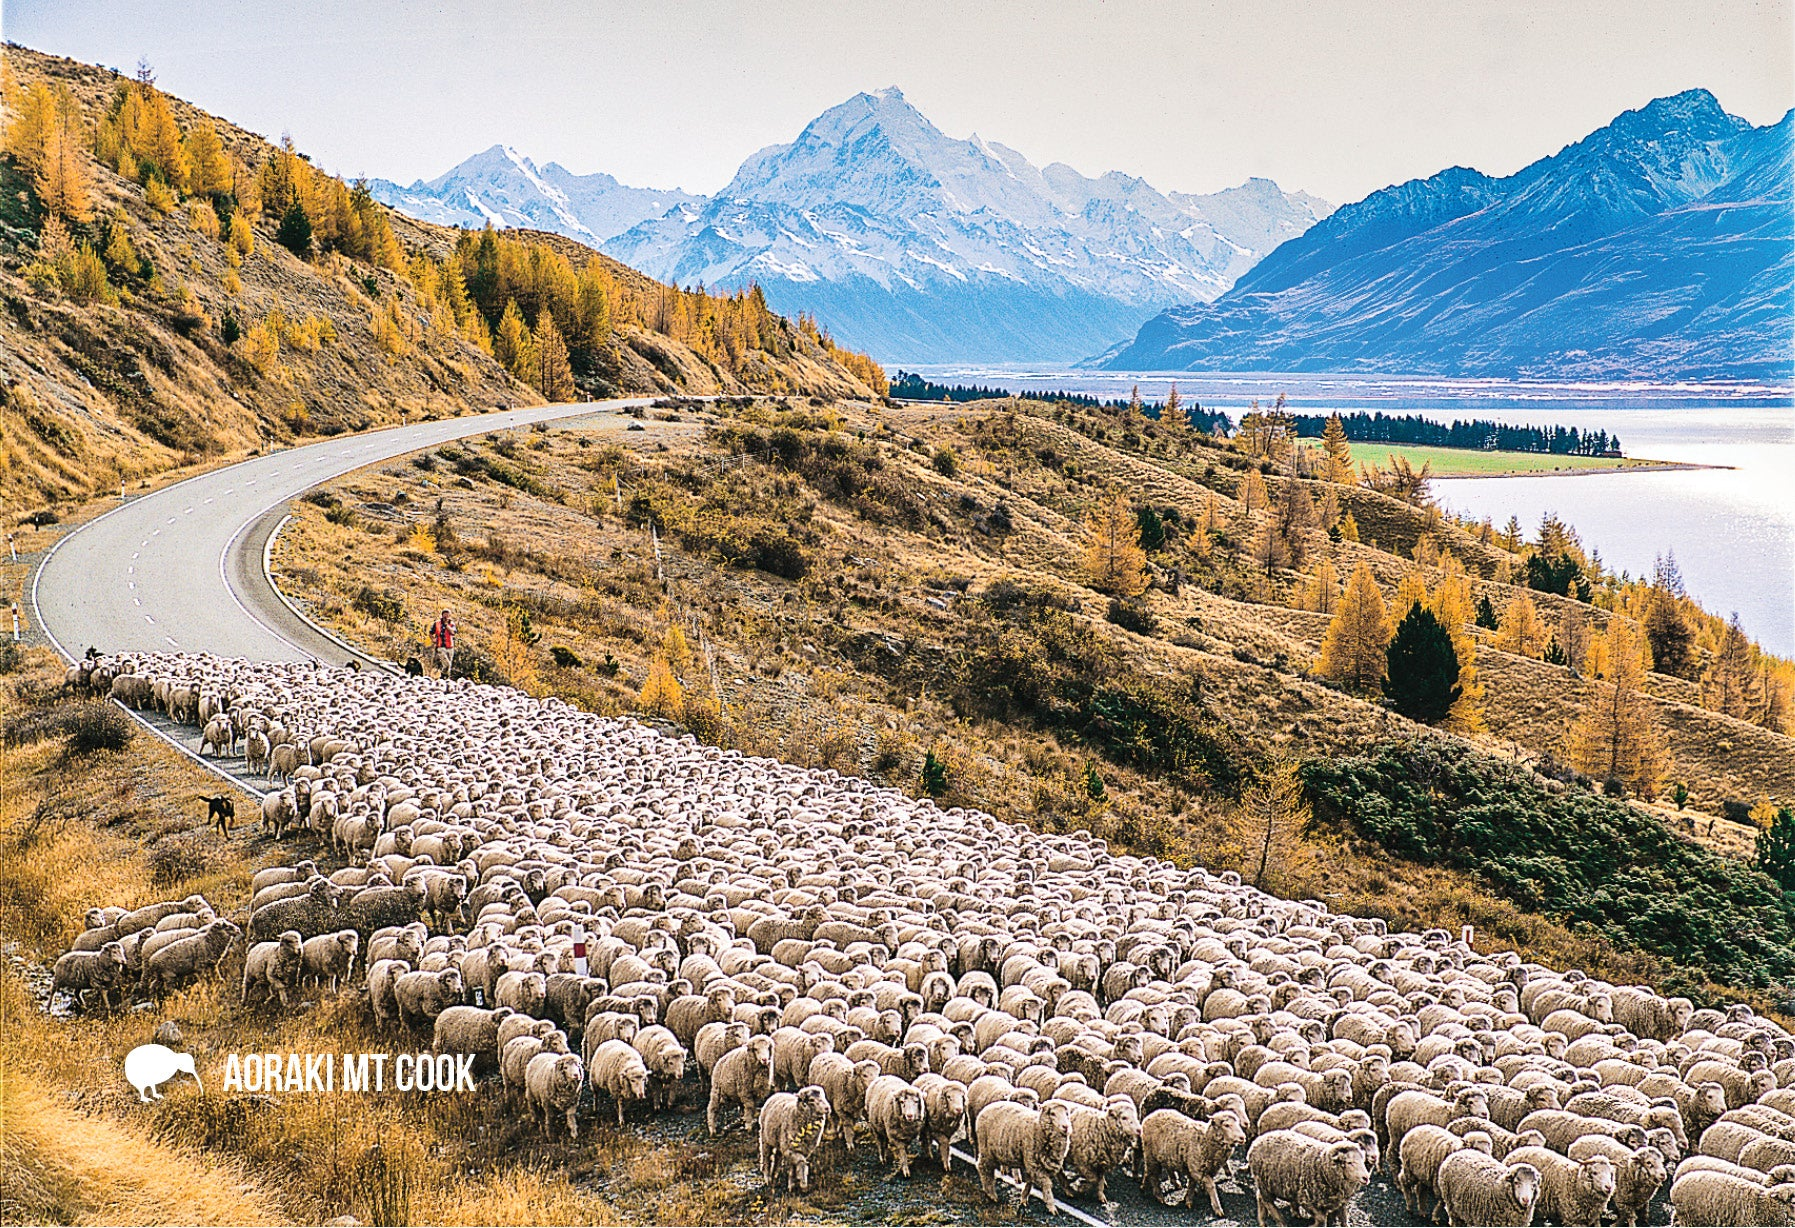 SMC347 - Mustering Sheep, Mt Cook - Small Postcard - Postcards NZ Ltd